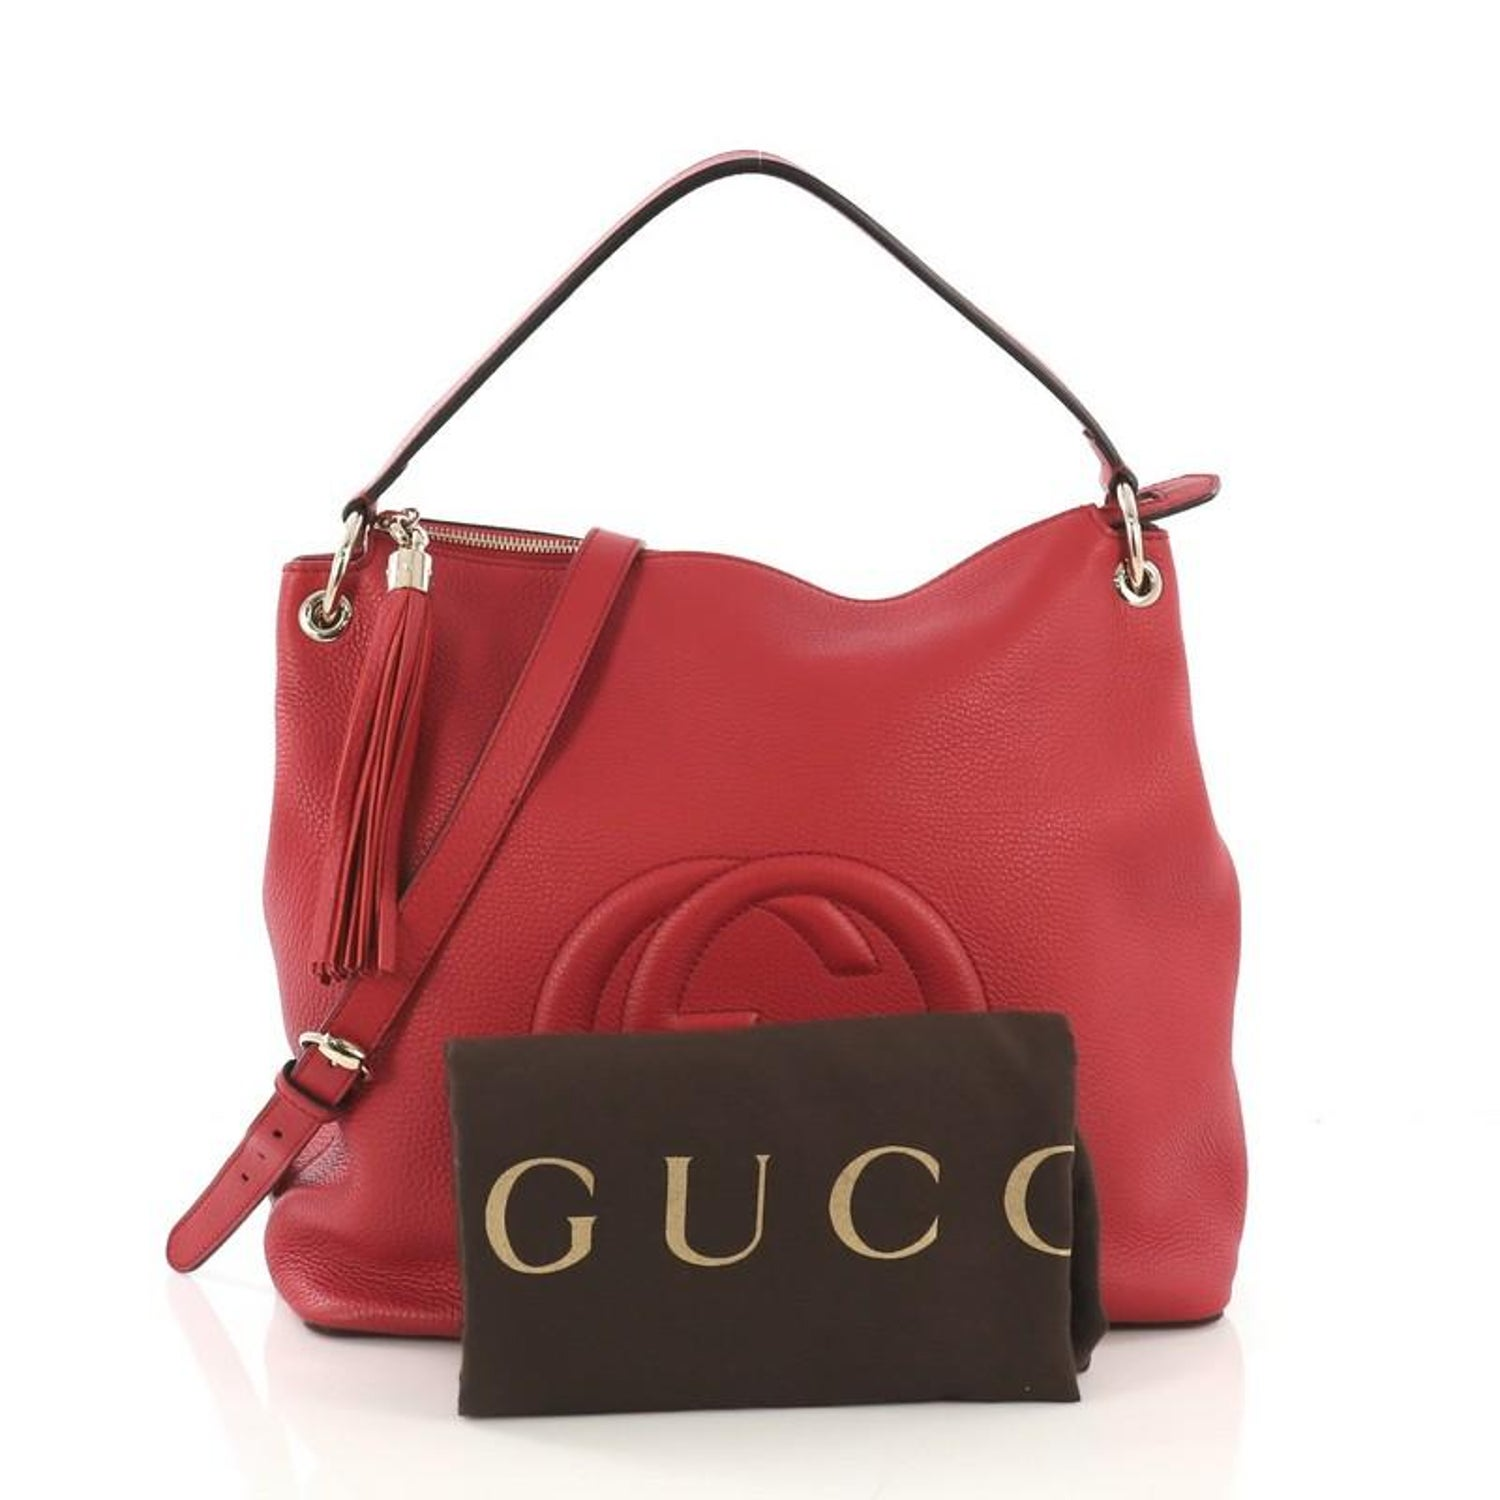 7fac45f1260f4a Gucci Soho Convertible Hobo Leather Large For Sale at 1stdibs